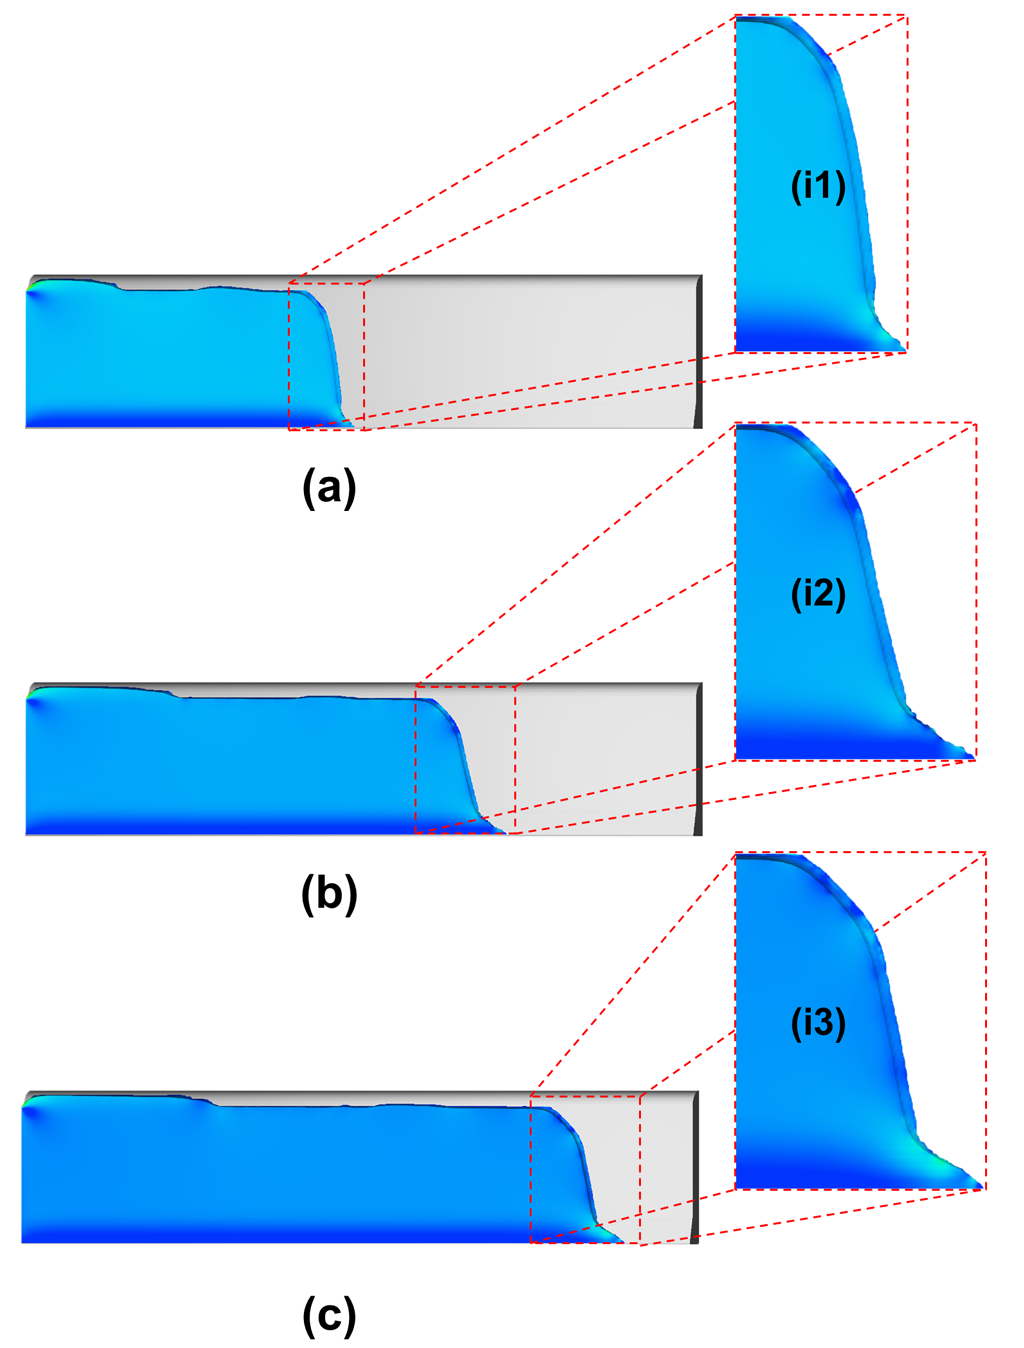 Simulating capillary flow